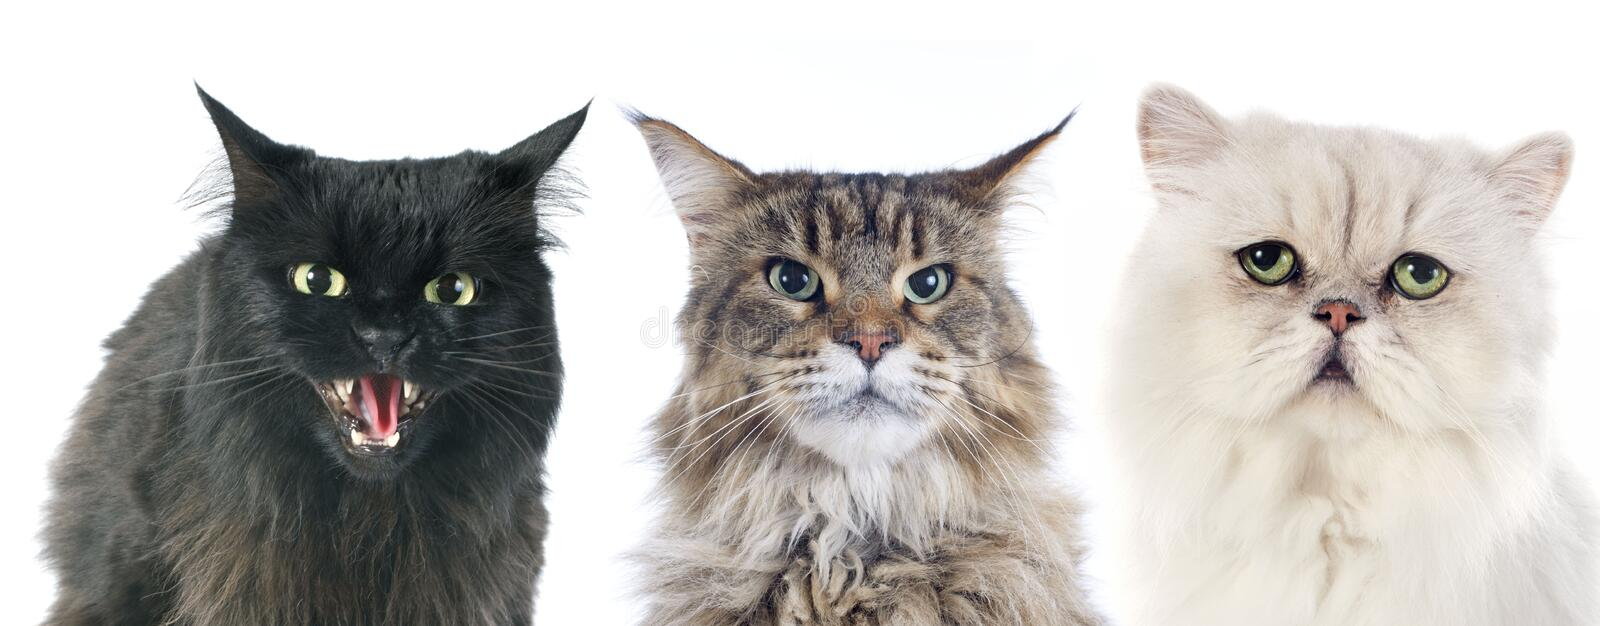 Furious cats royalty free stock photos